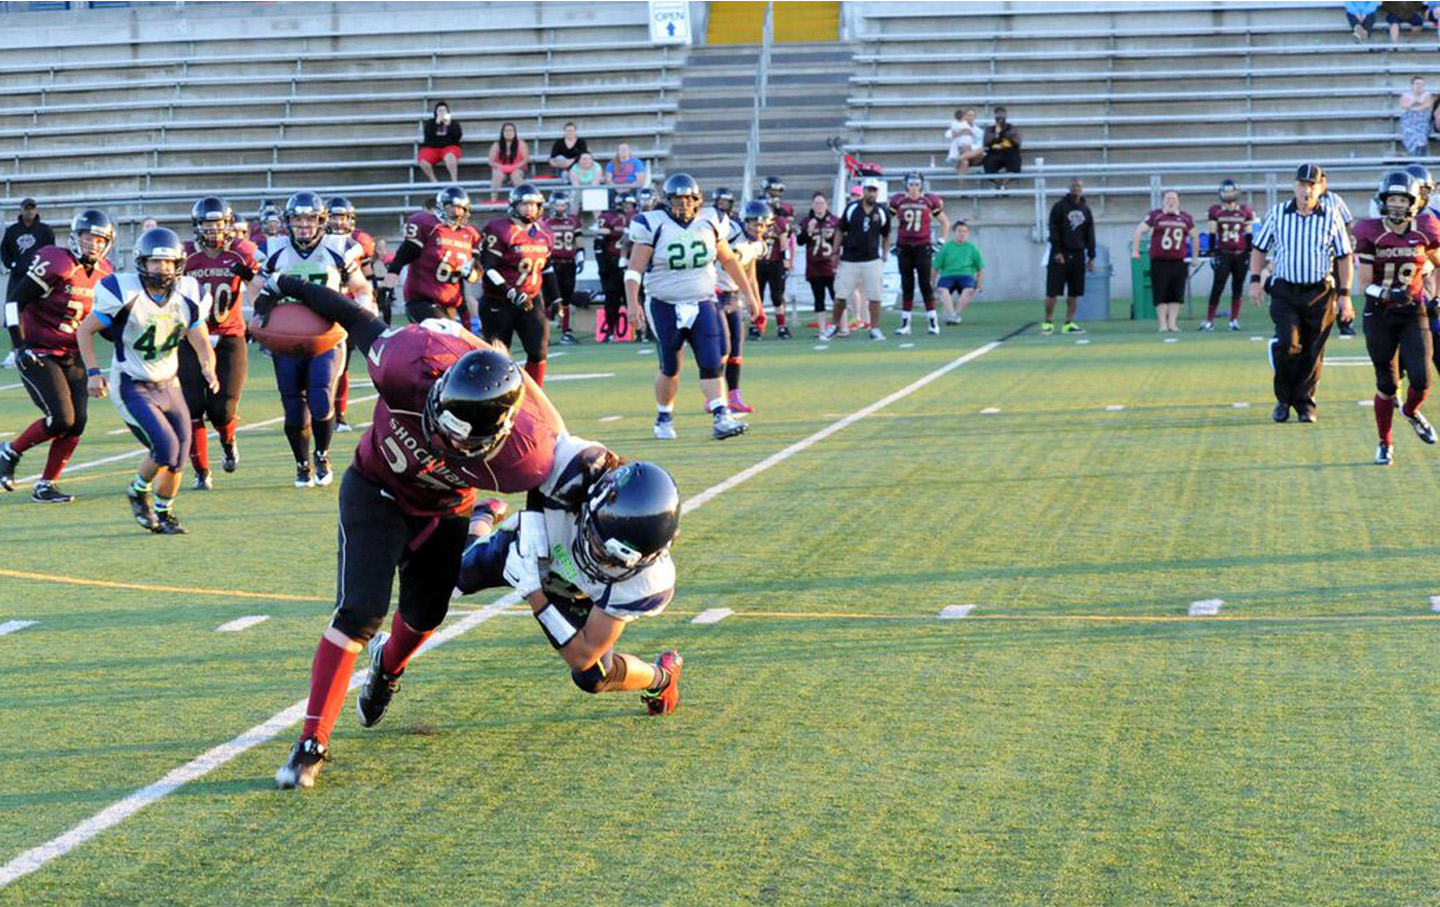 The Seattle Majestics challenge the Portland Shockwave during their undefeated 2014 season.